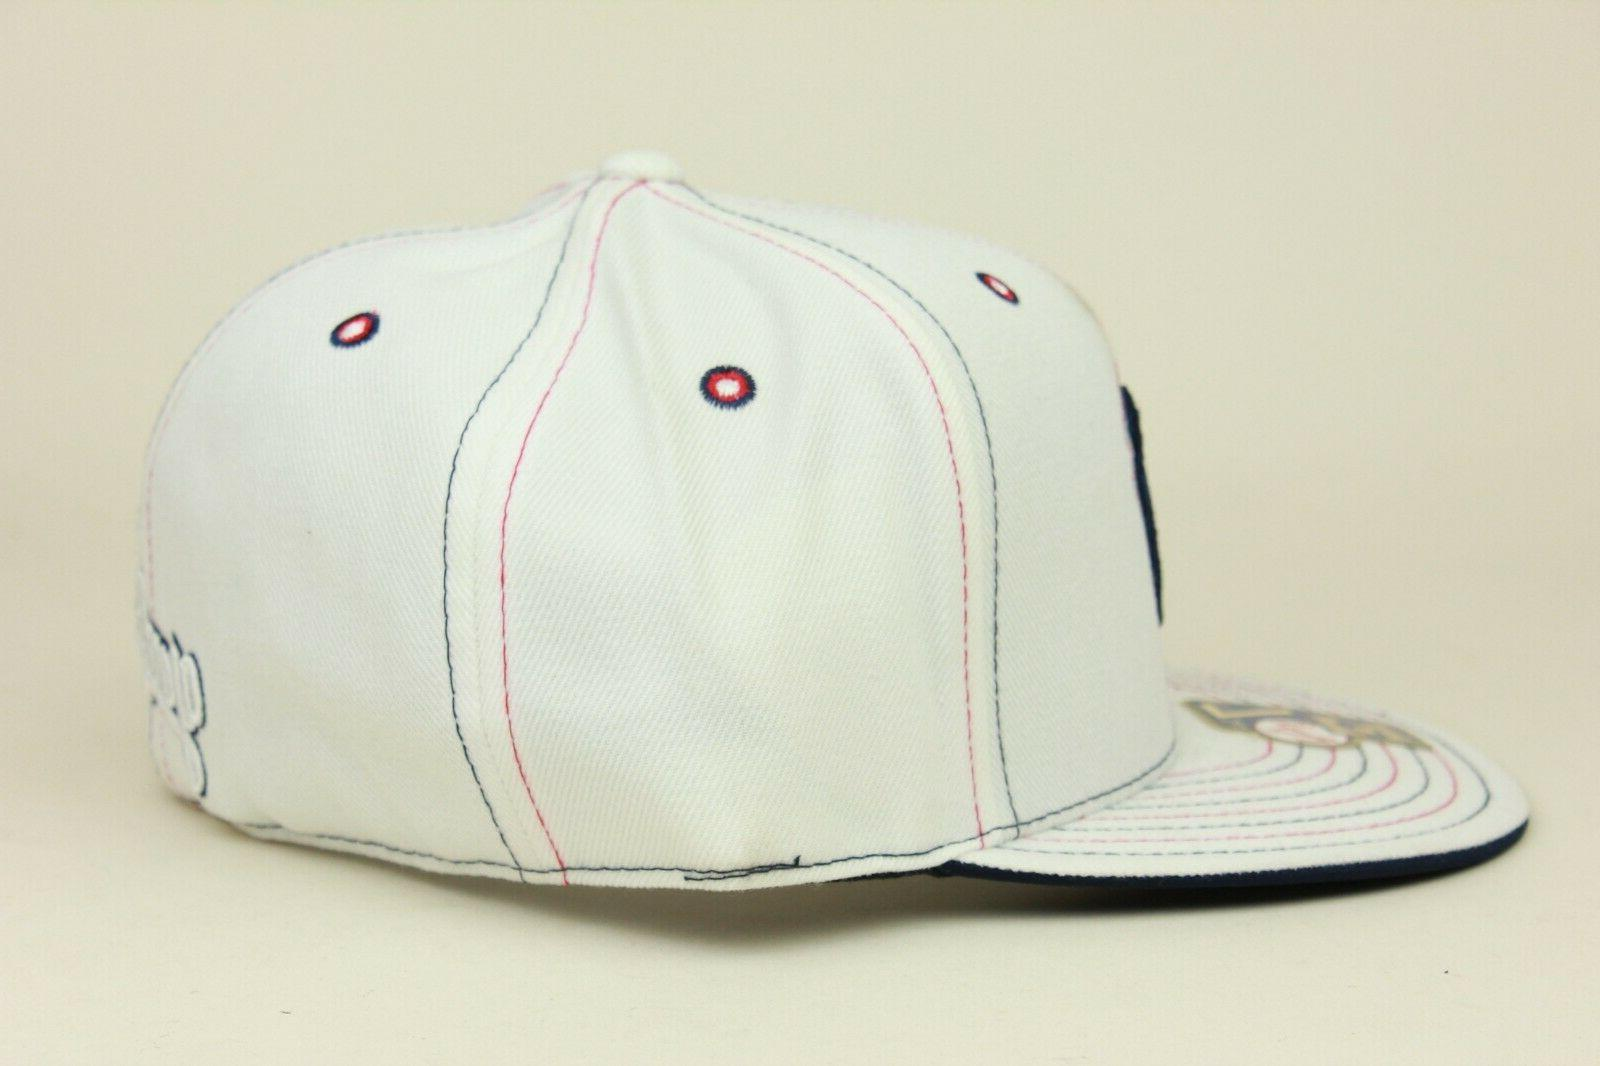 New York Yankees White Navy Needle Cooperstown Hat DEF